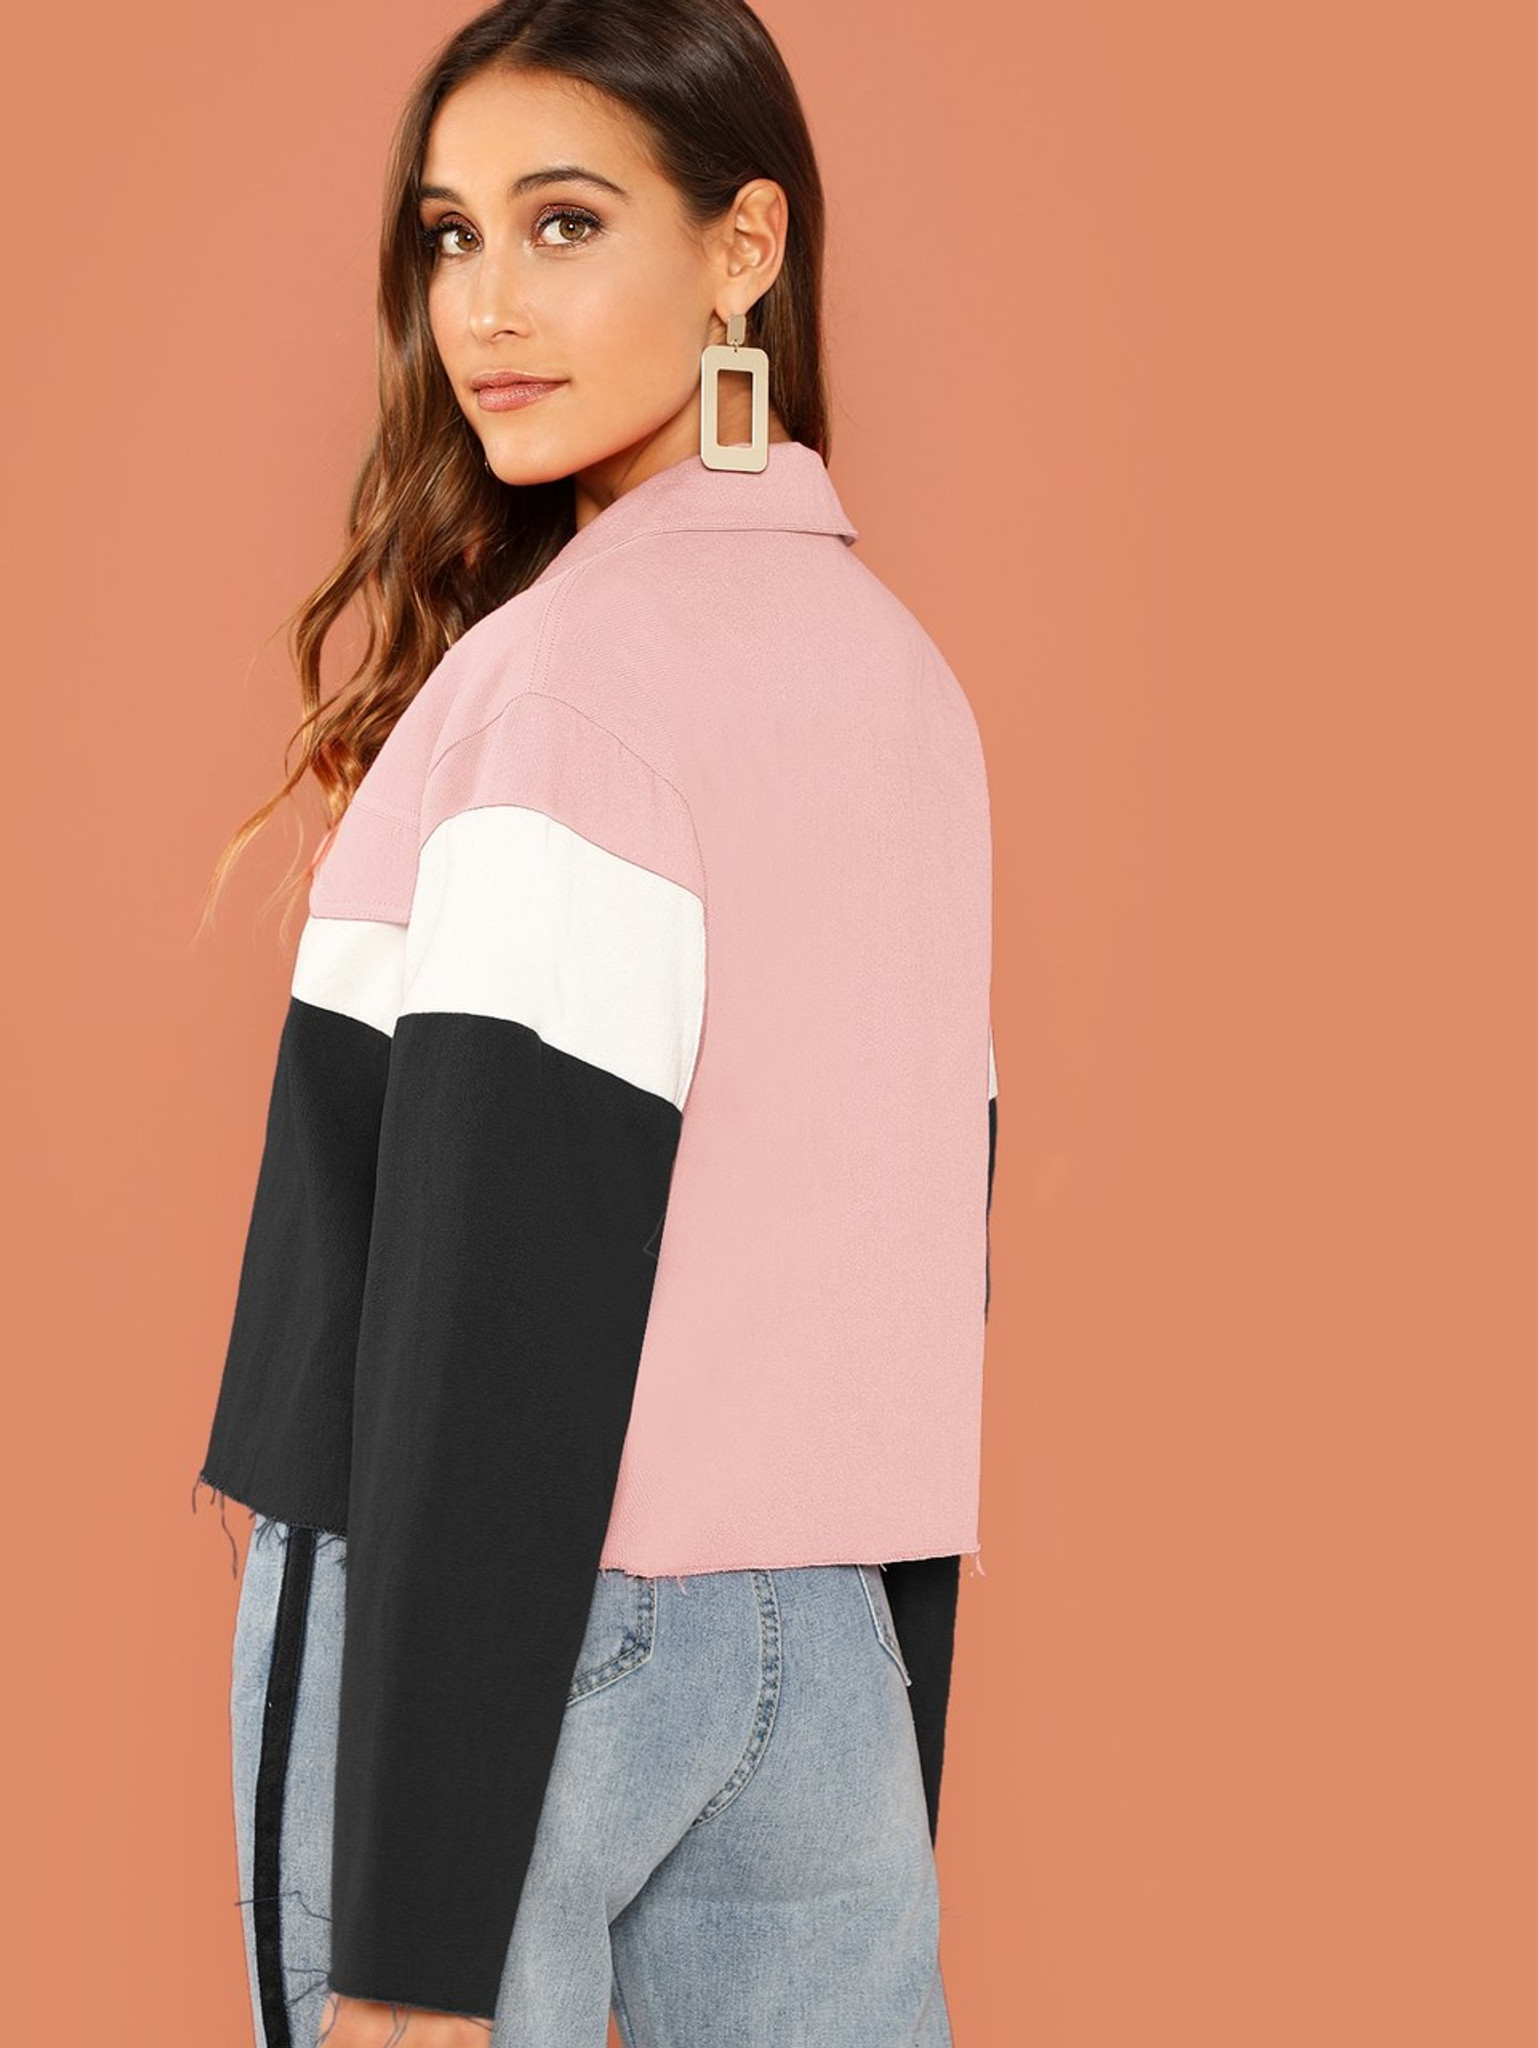 Fifth Avenue Cropped Fleece Color Block Button Jacket LNA1020 - Pink and Black